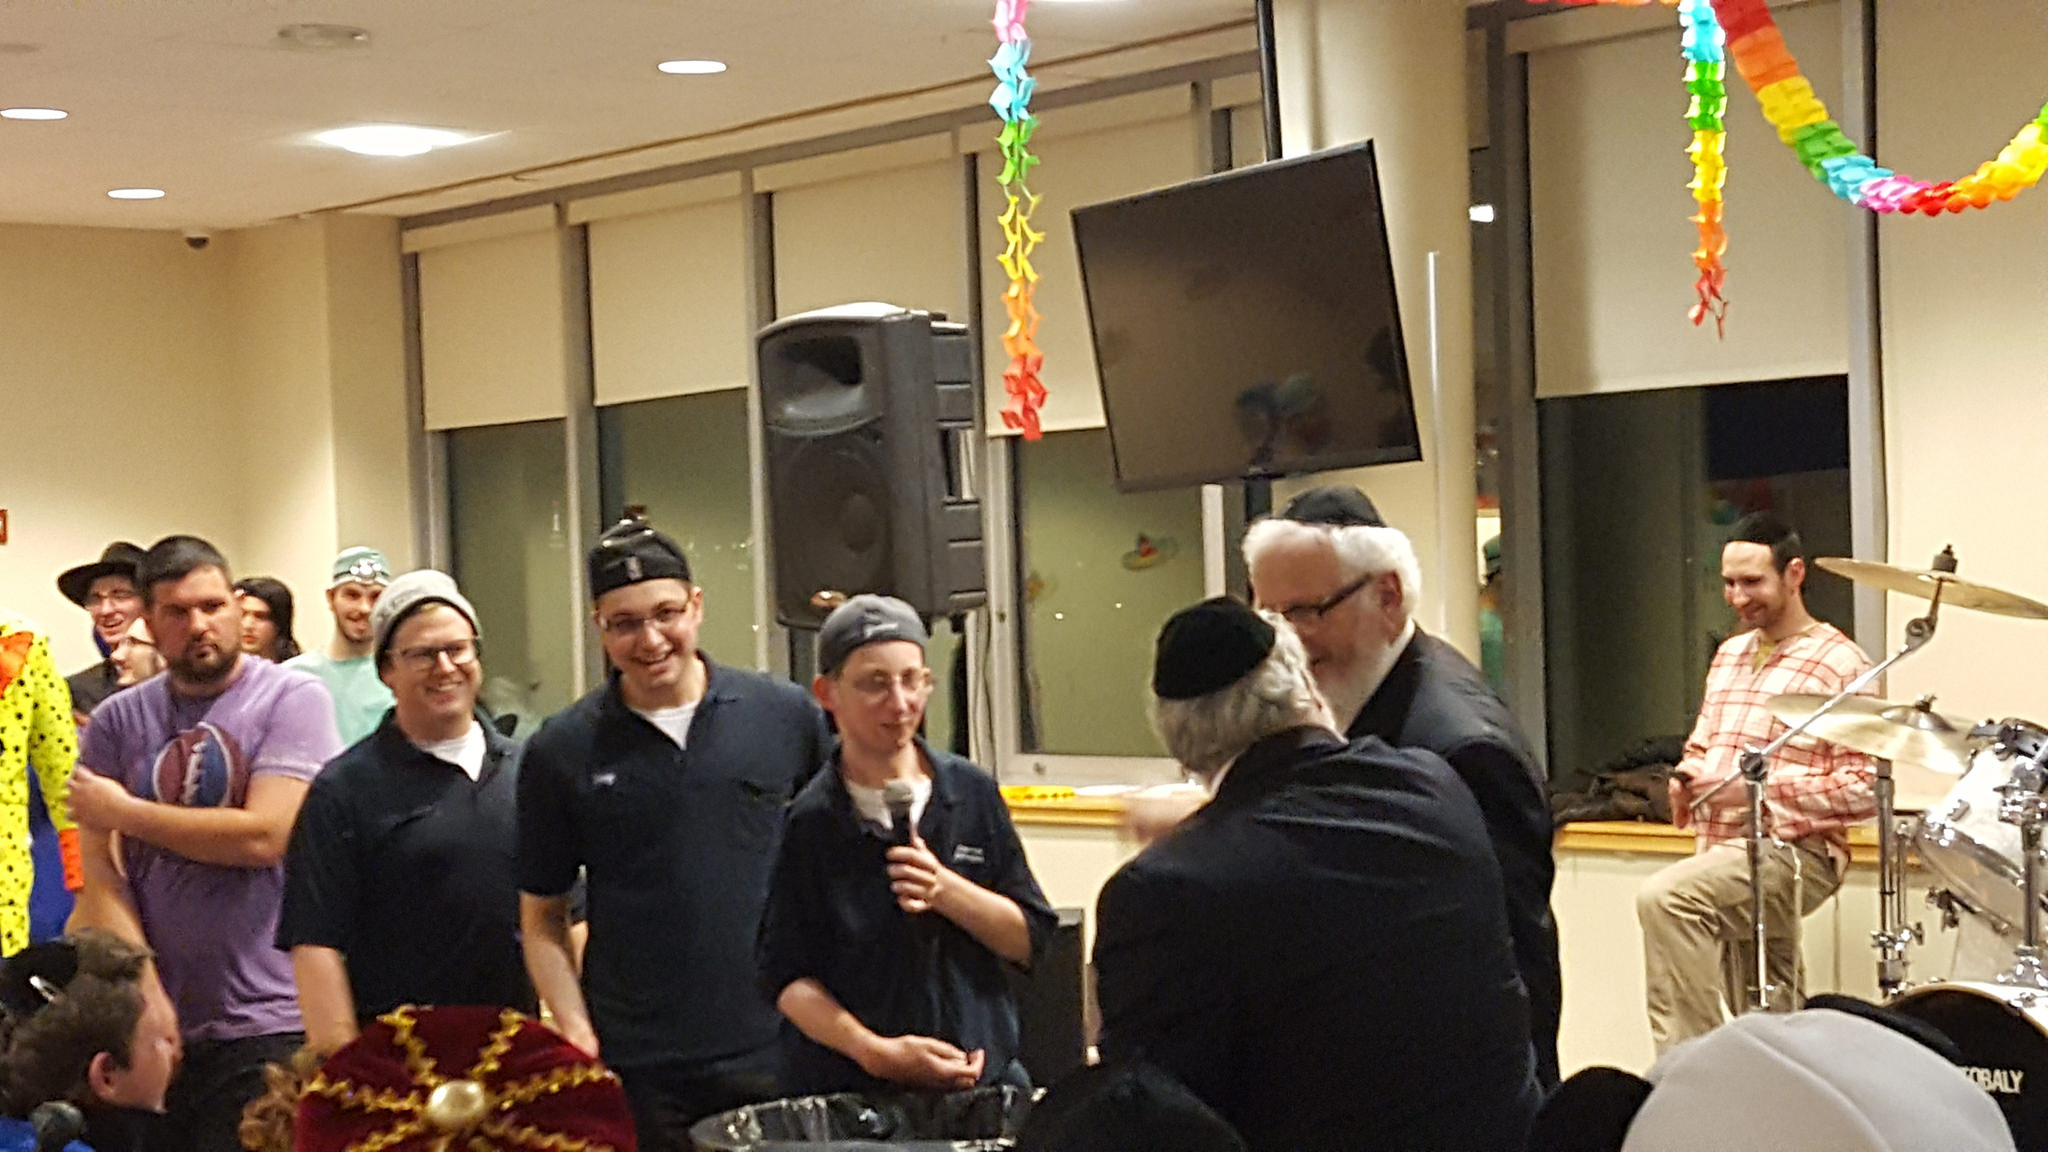 Purim Costume contest winners were Yaakov Burack, Michael Sher, and Netanel Lederer, who dressed as the Lander College for Men cleaning crew.